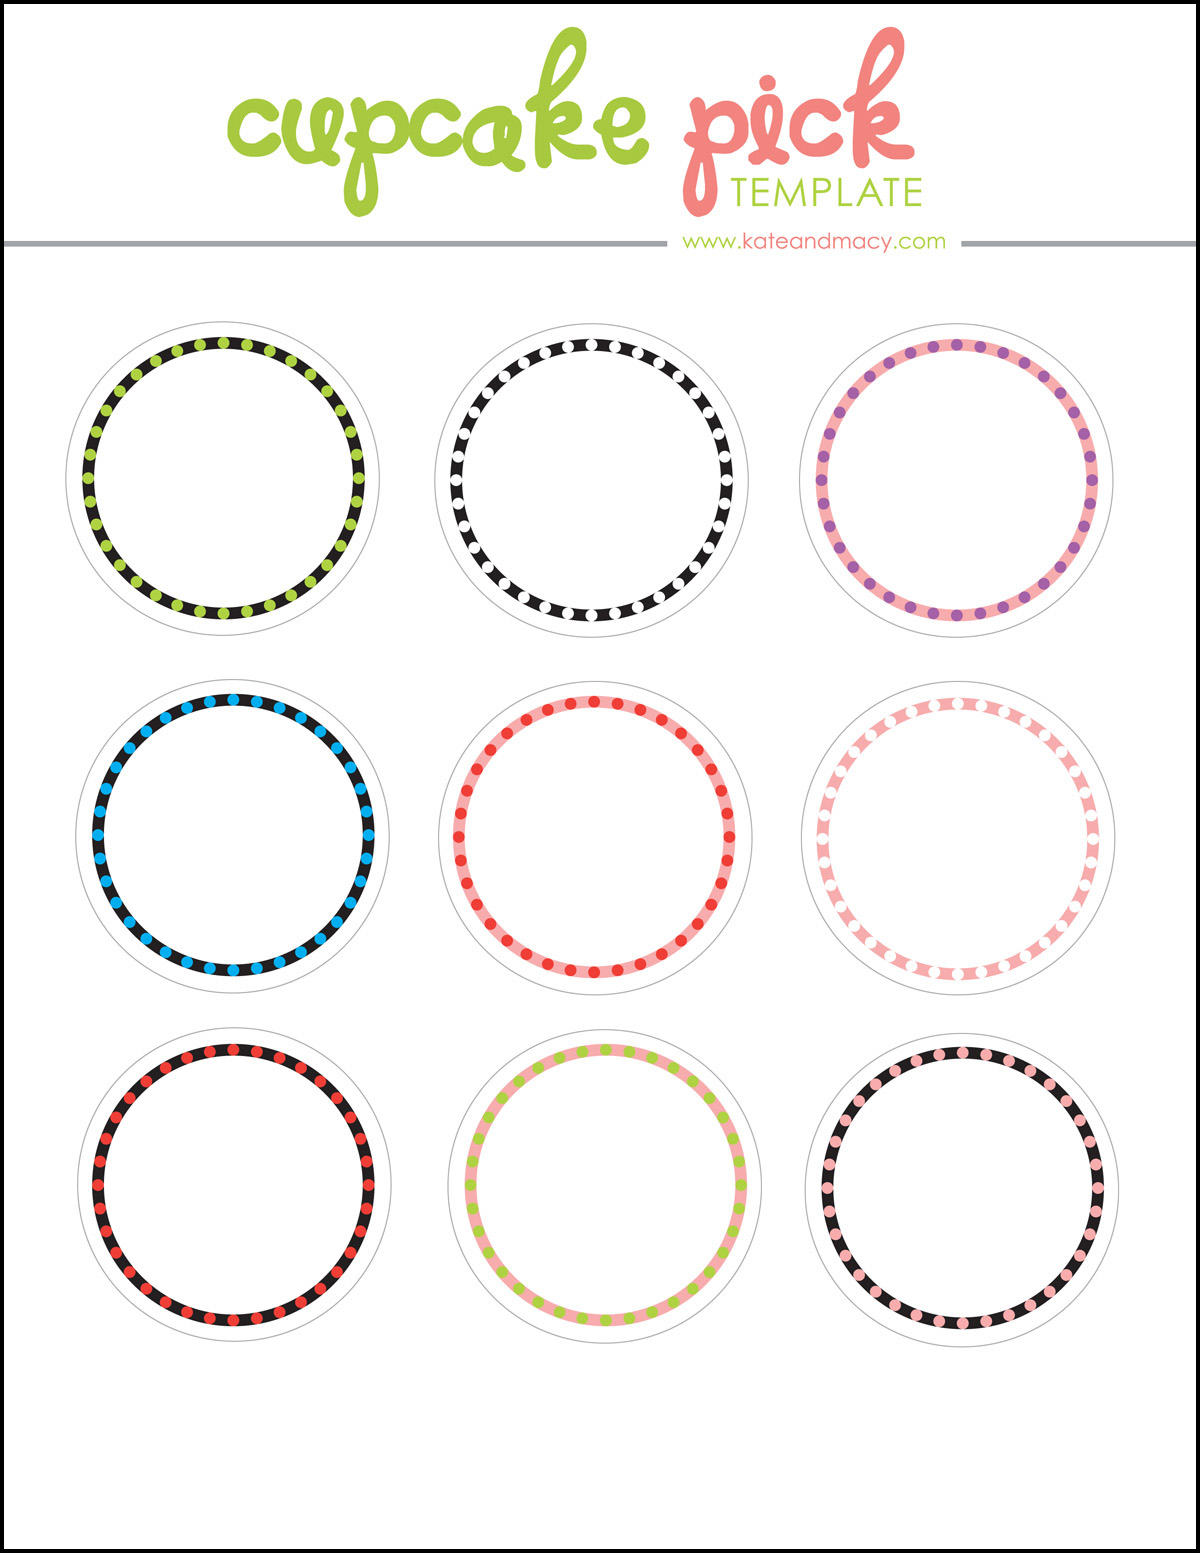 Click here to download your own free cupcake pick template!